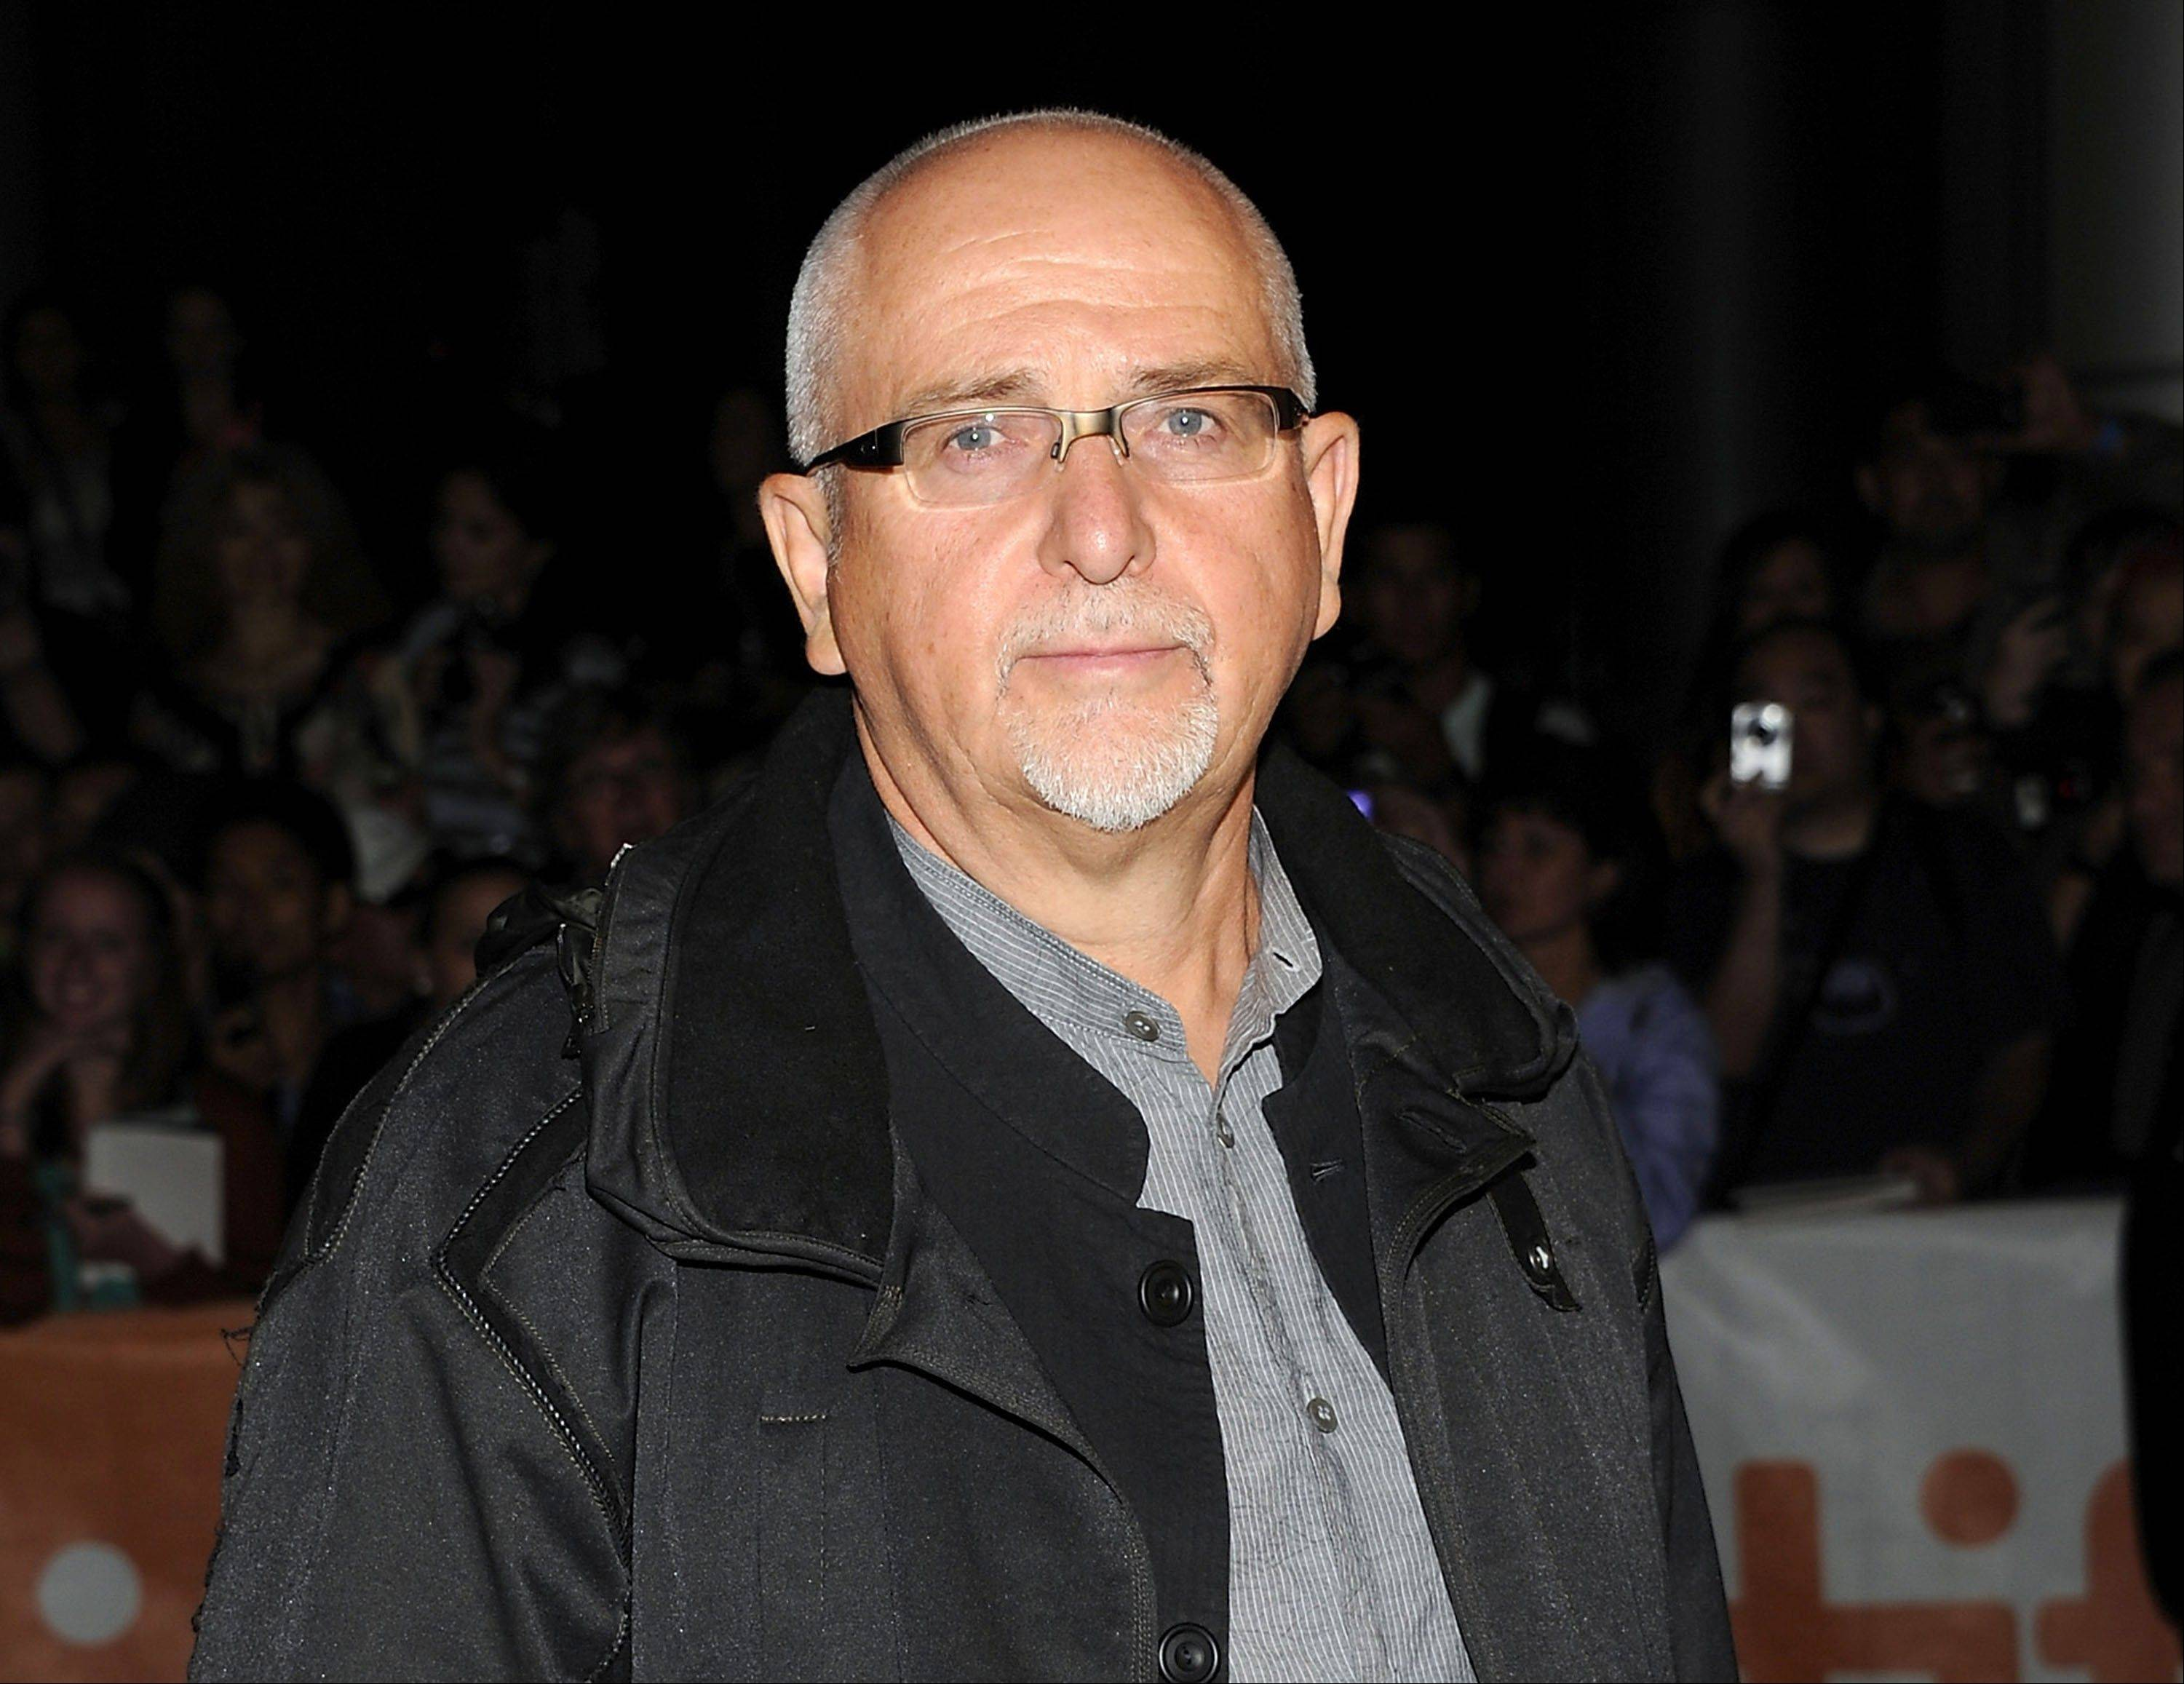 Musician Peter Gabriel will be inducted into the 2014 Rock and Roll Hall of Fame on April 10 at the Barclays Center in New York.